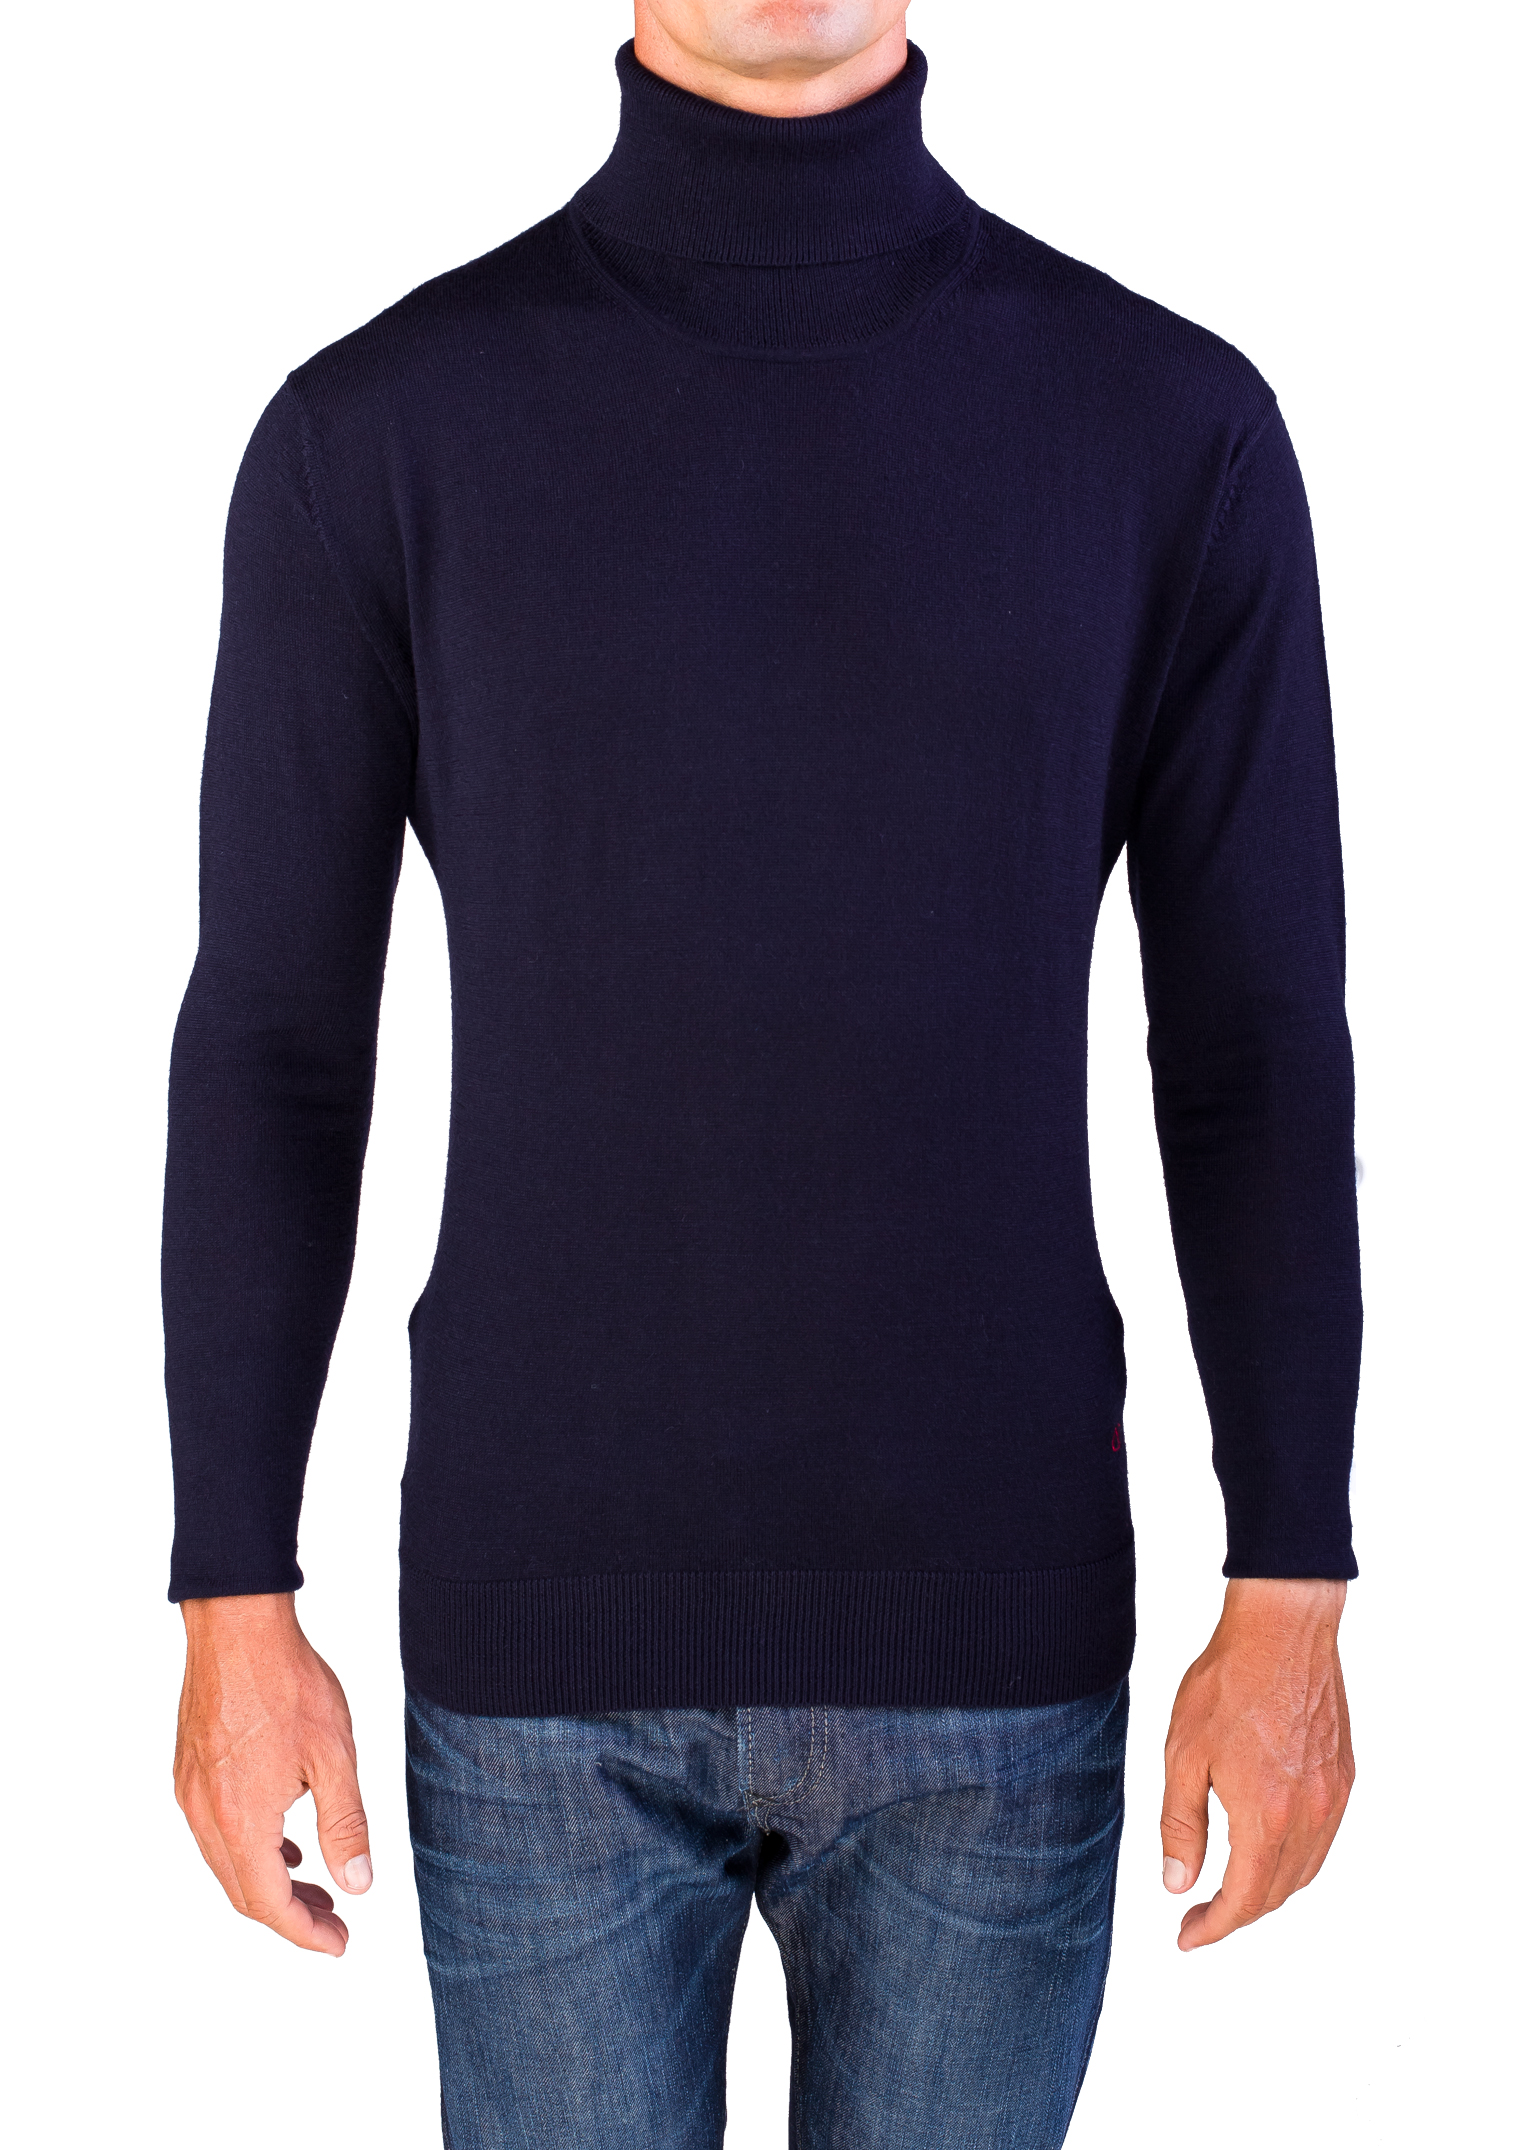 Valentino Men's Turtleneck Sweater Dark Navy Blue | eBay